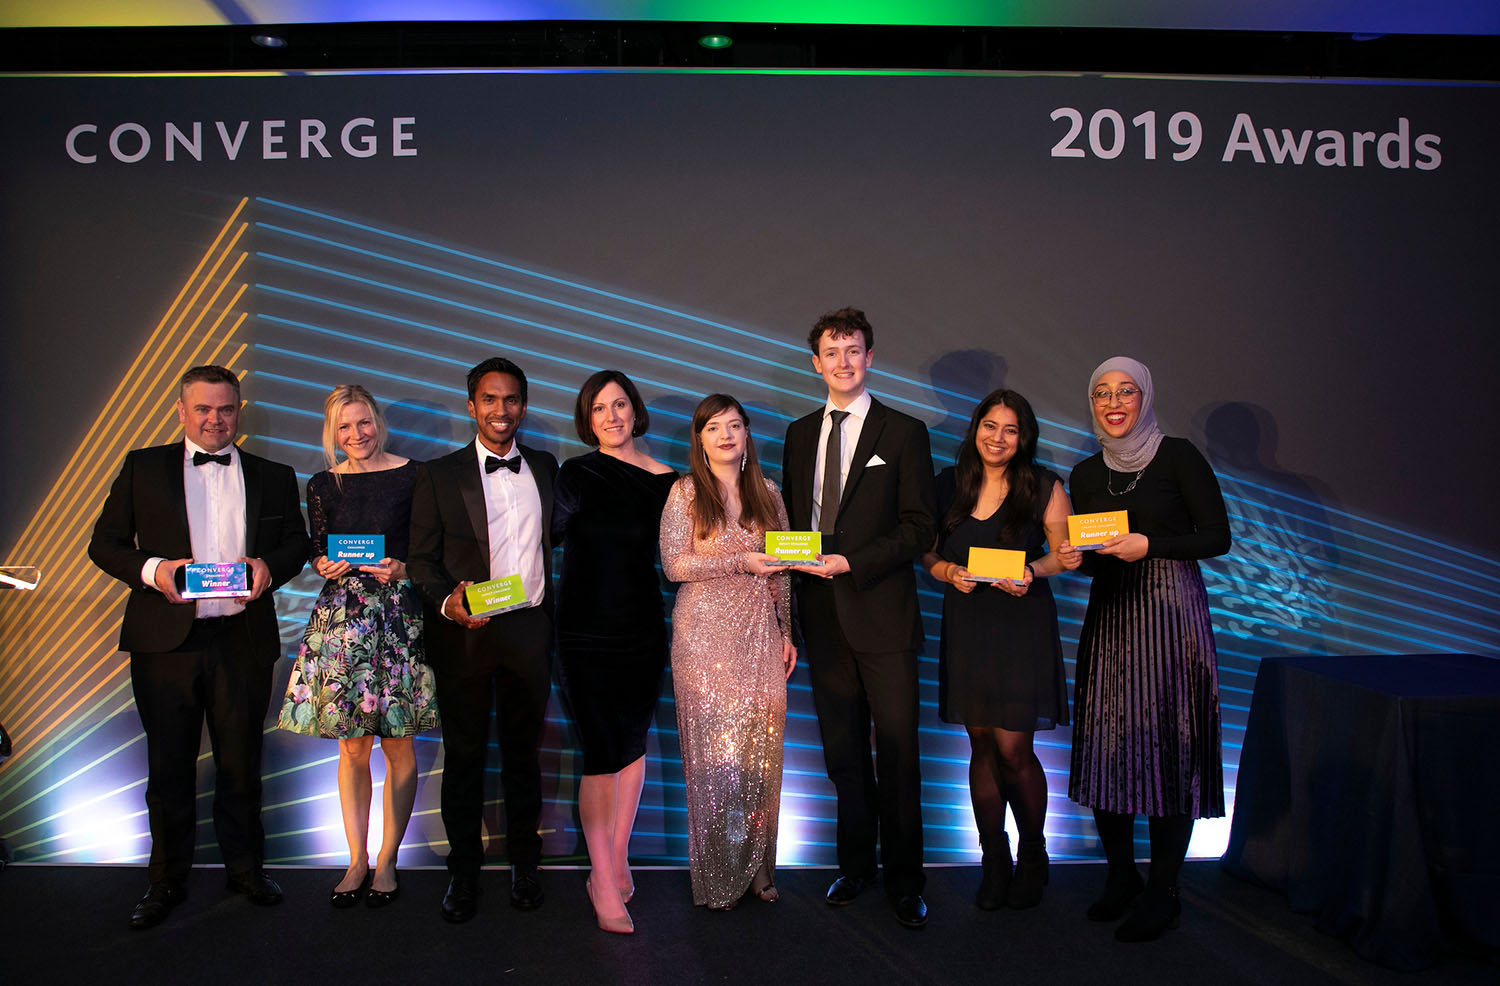 Scotland's Universities Set a New Bar for Global Innovation as 2019 Converge Winners are Announced